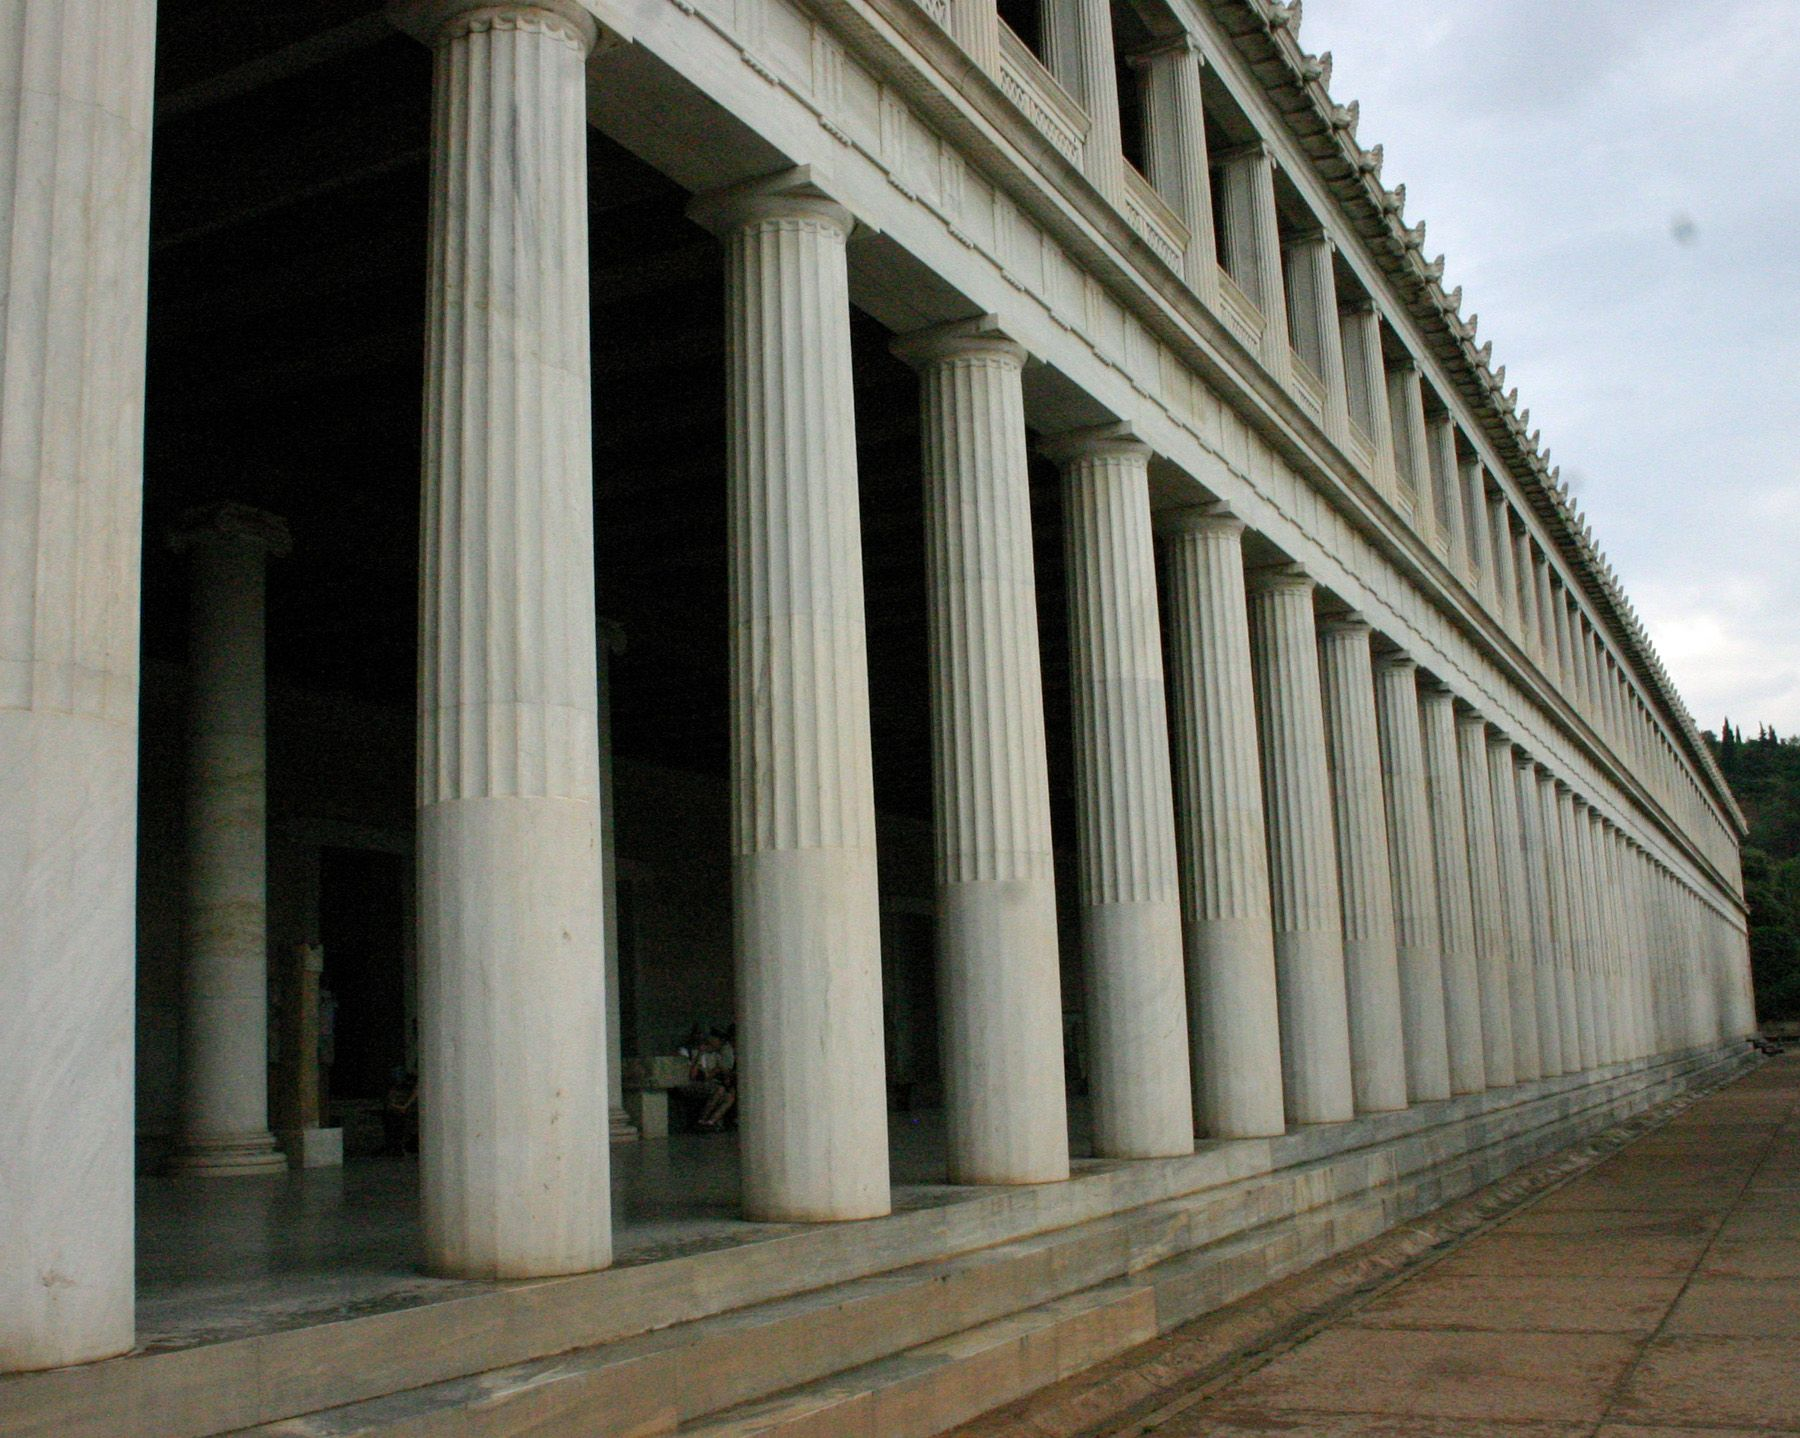 The Stoa Of Attalos At The Ancient Agora Athens Greece 06 10